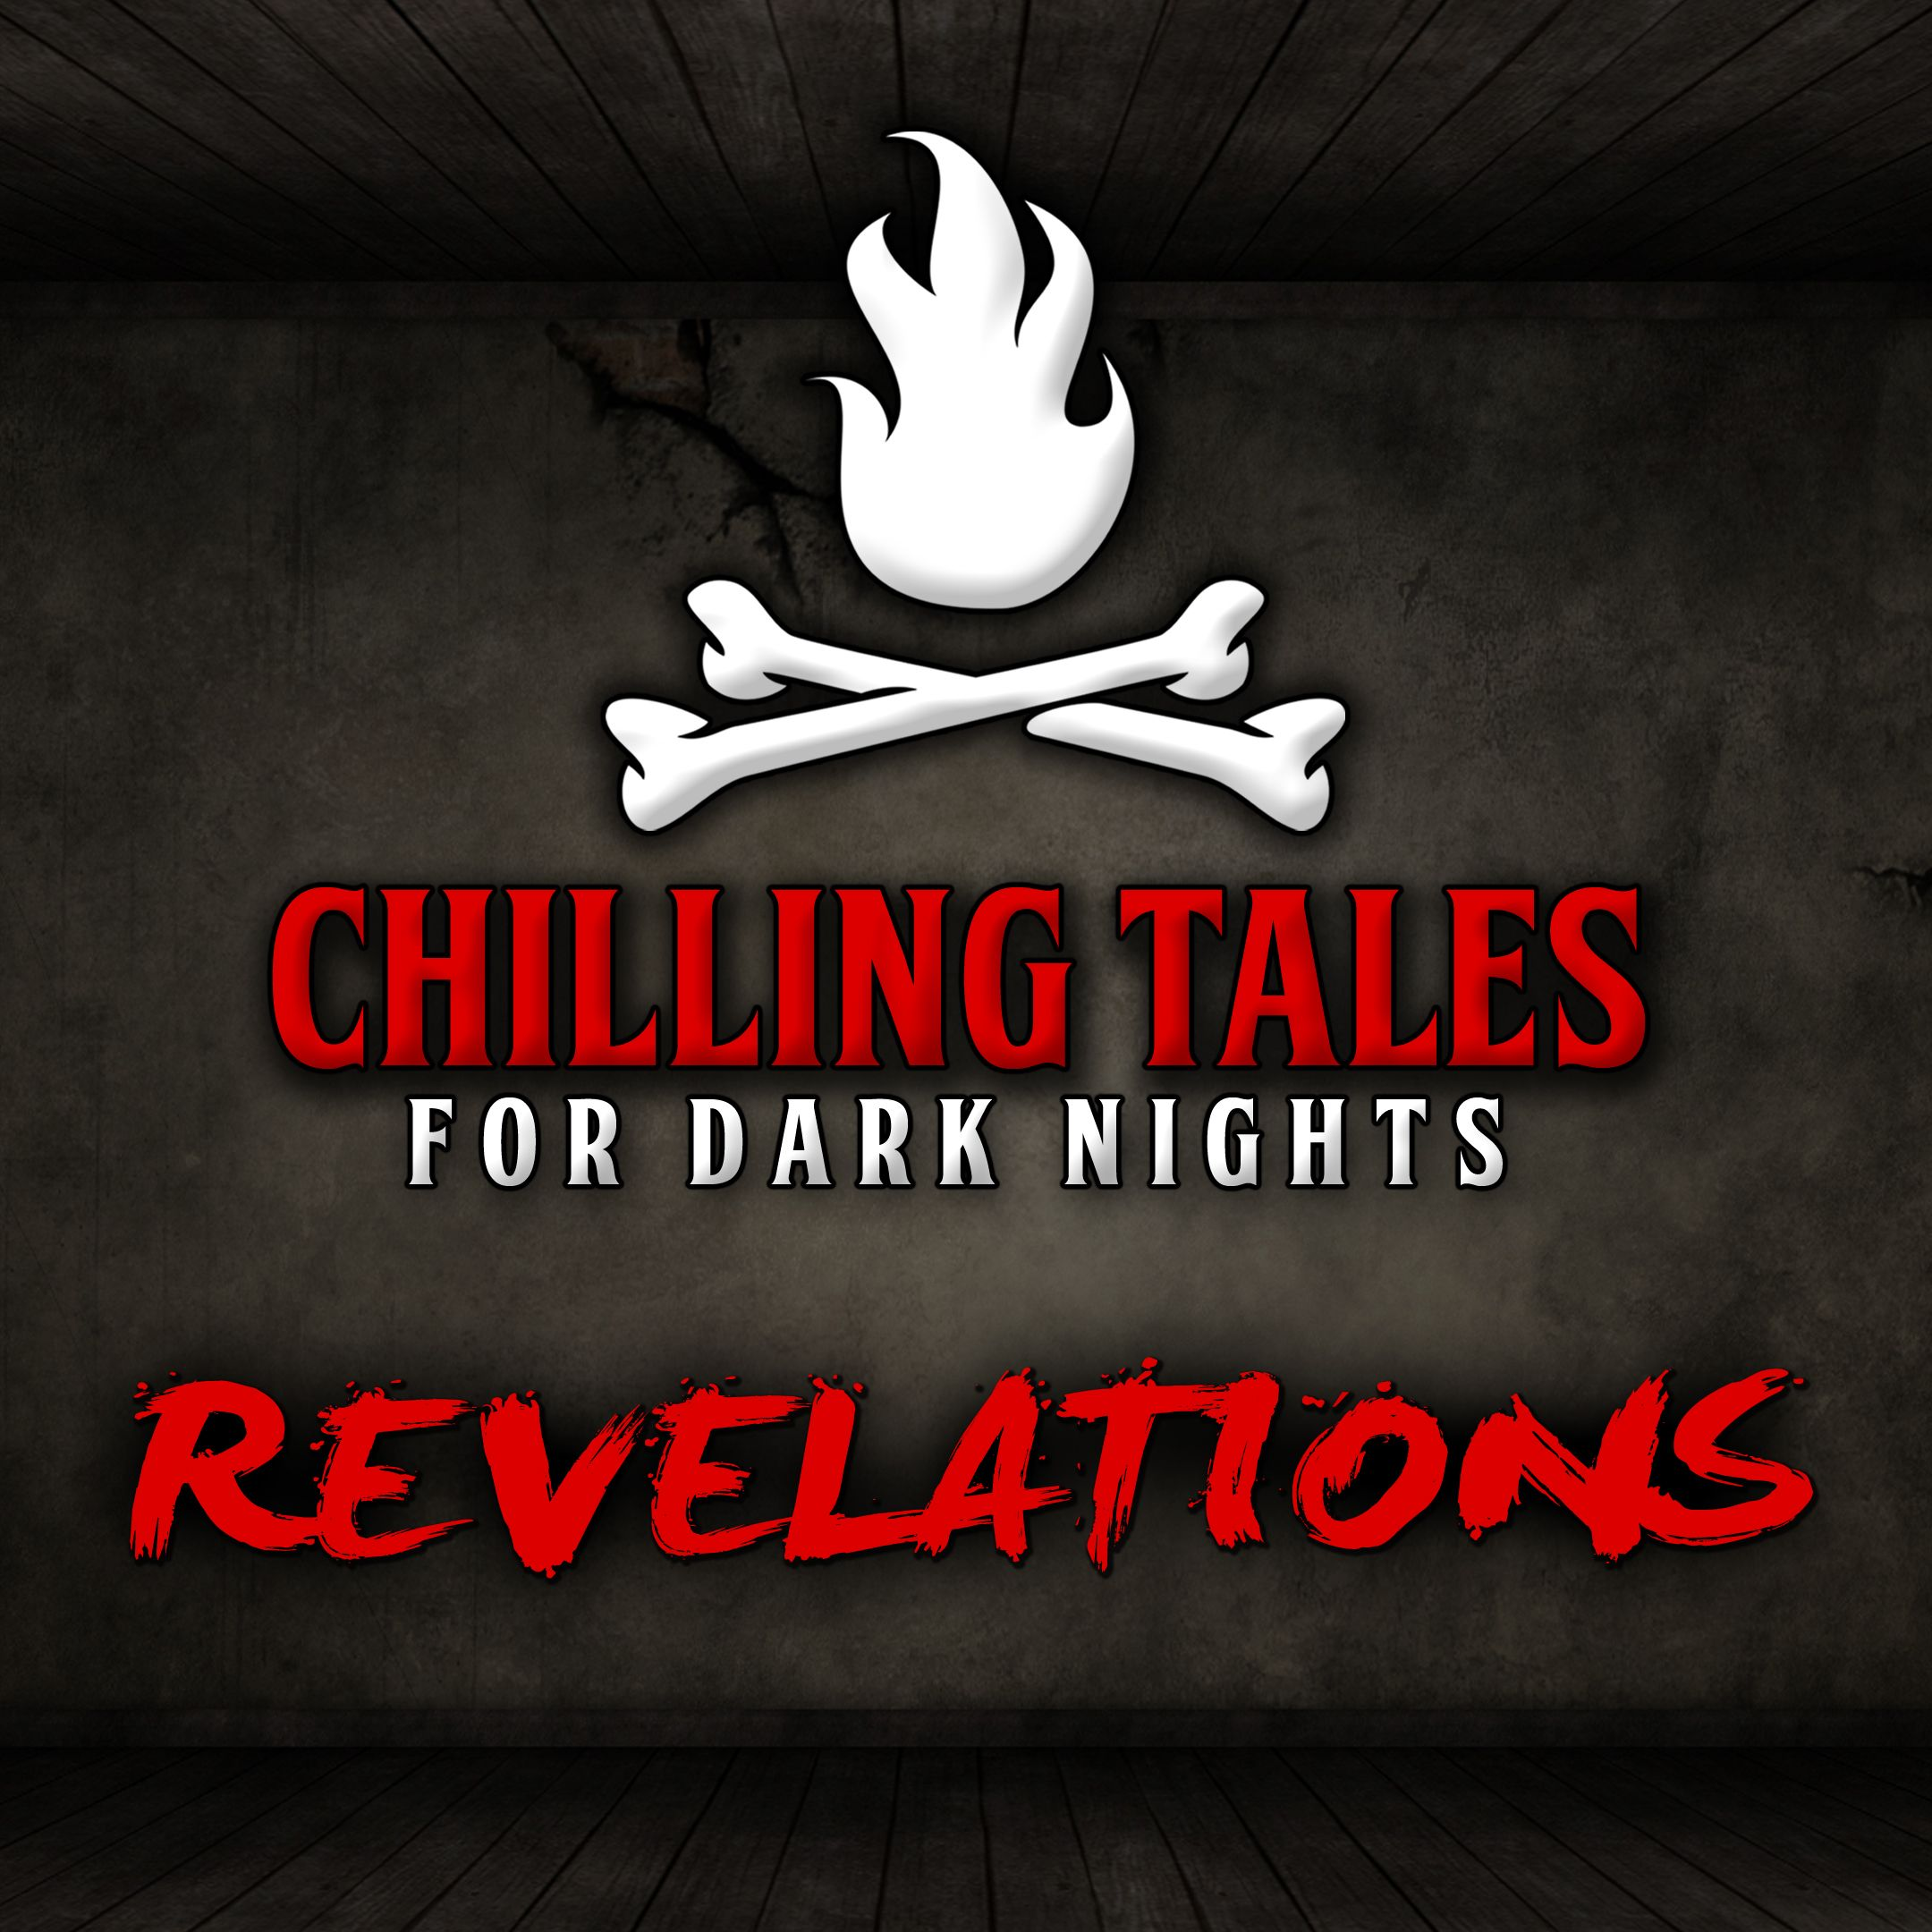 58: Revelations – Chilling Tales for Dark Nights